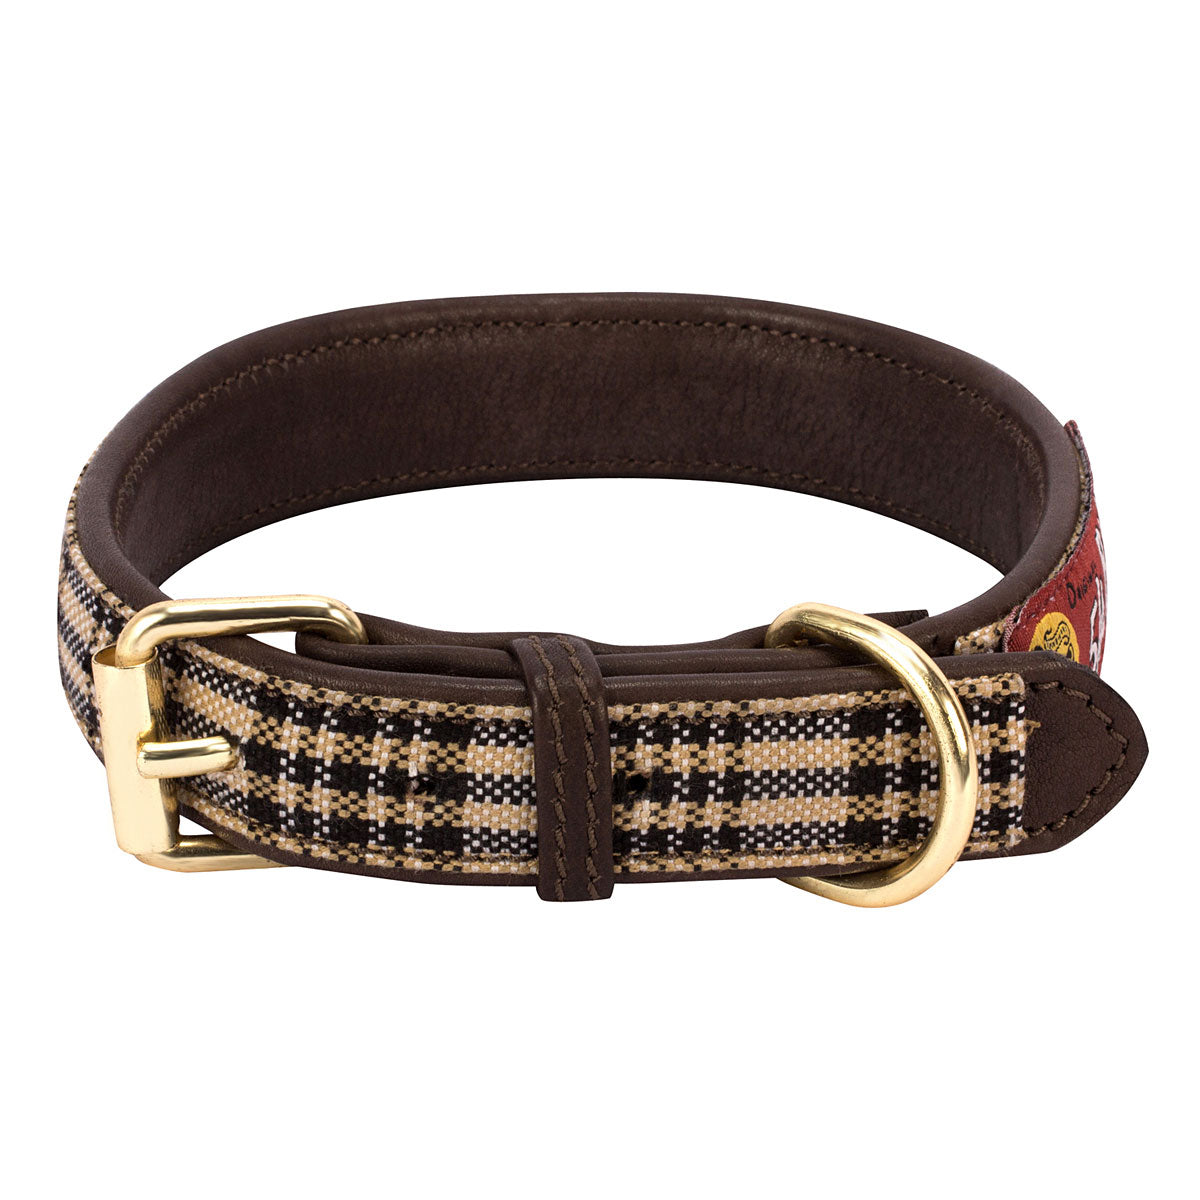 5/A Baker Leather Dog Collar with Baker Plaid Overlay - 5/A Baker - Breeches.com